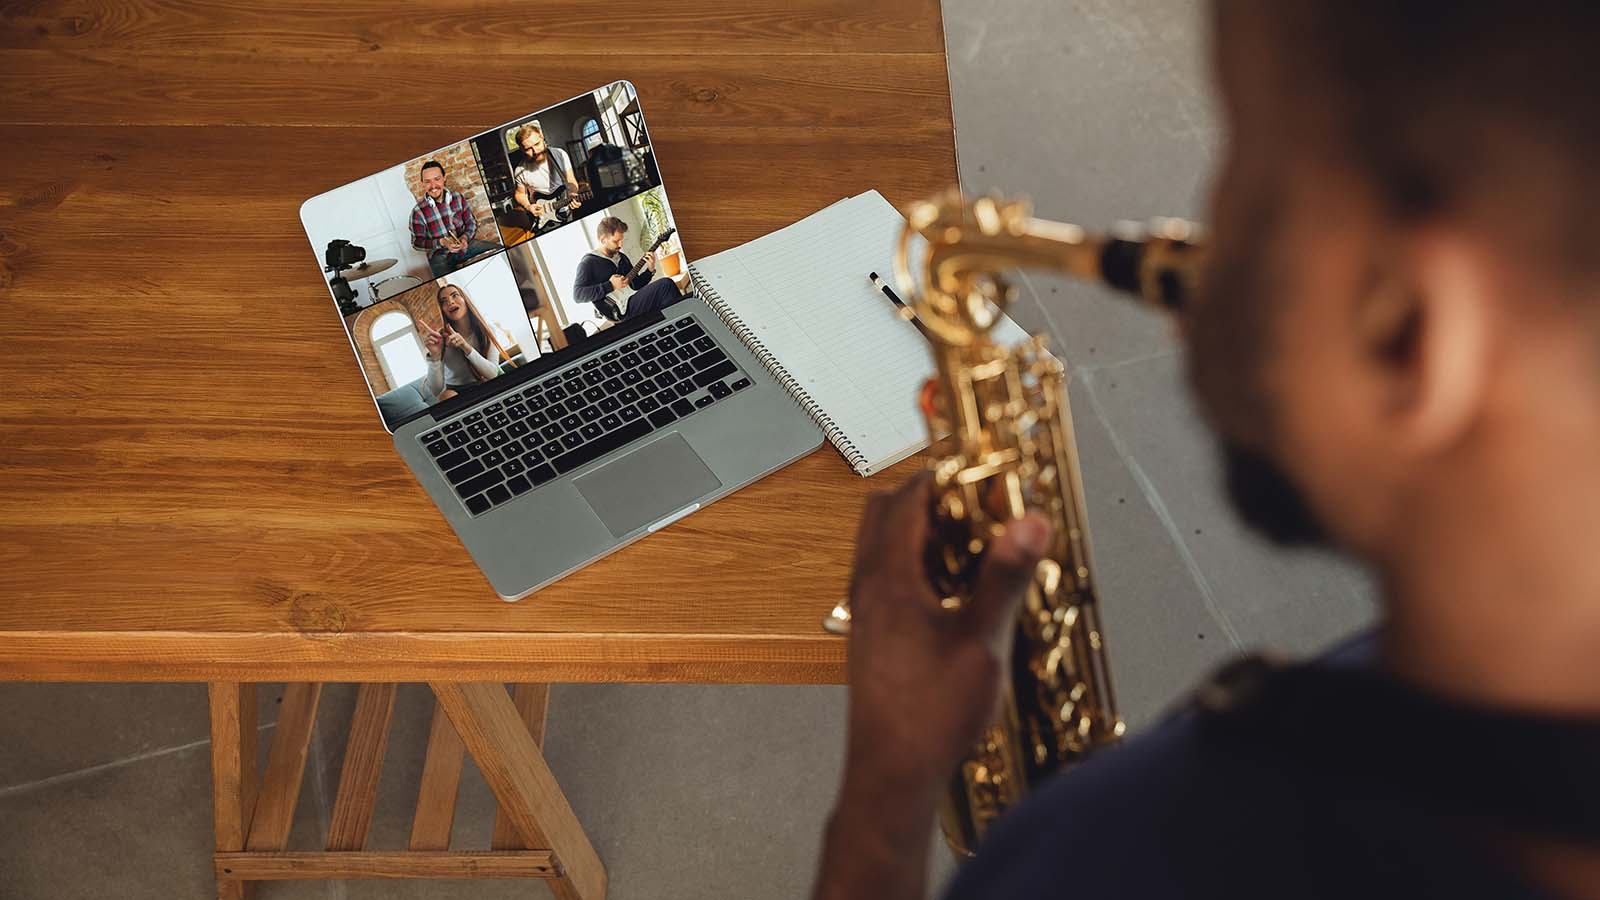 Saxophonist playing online with other musicians